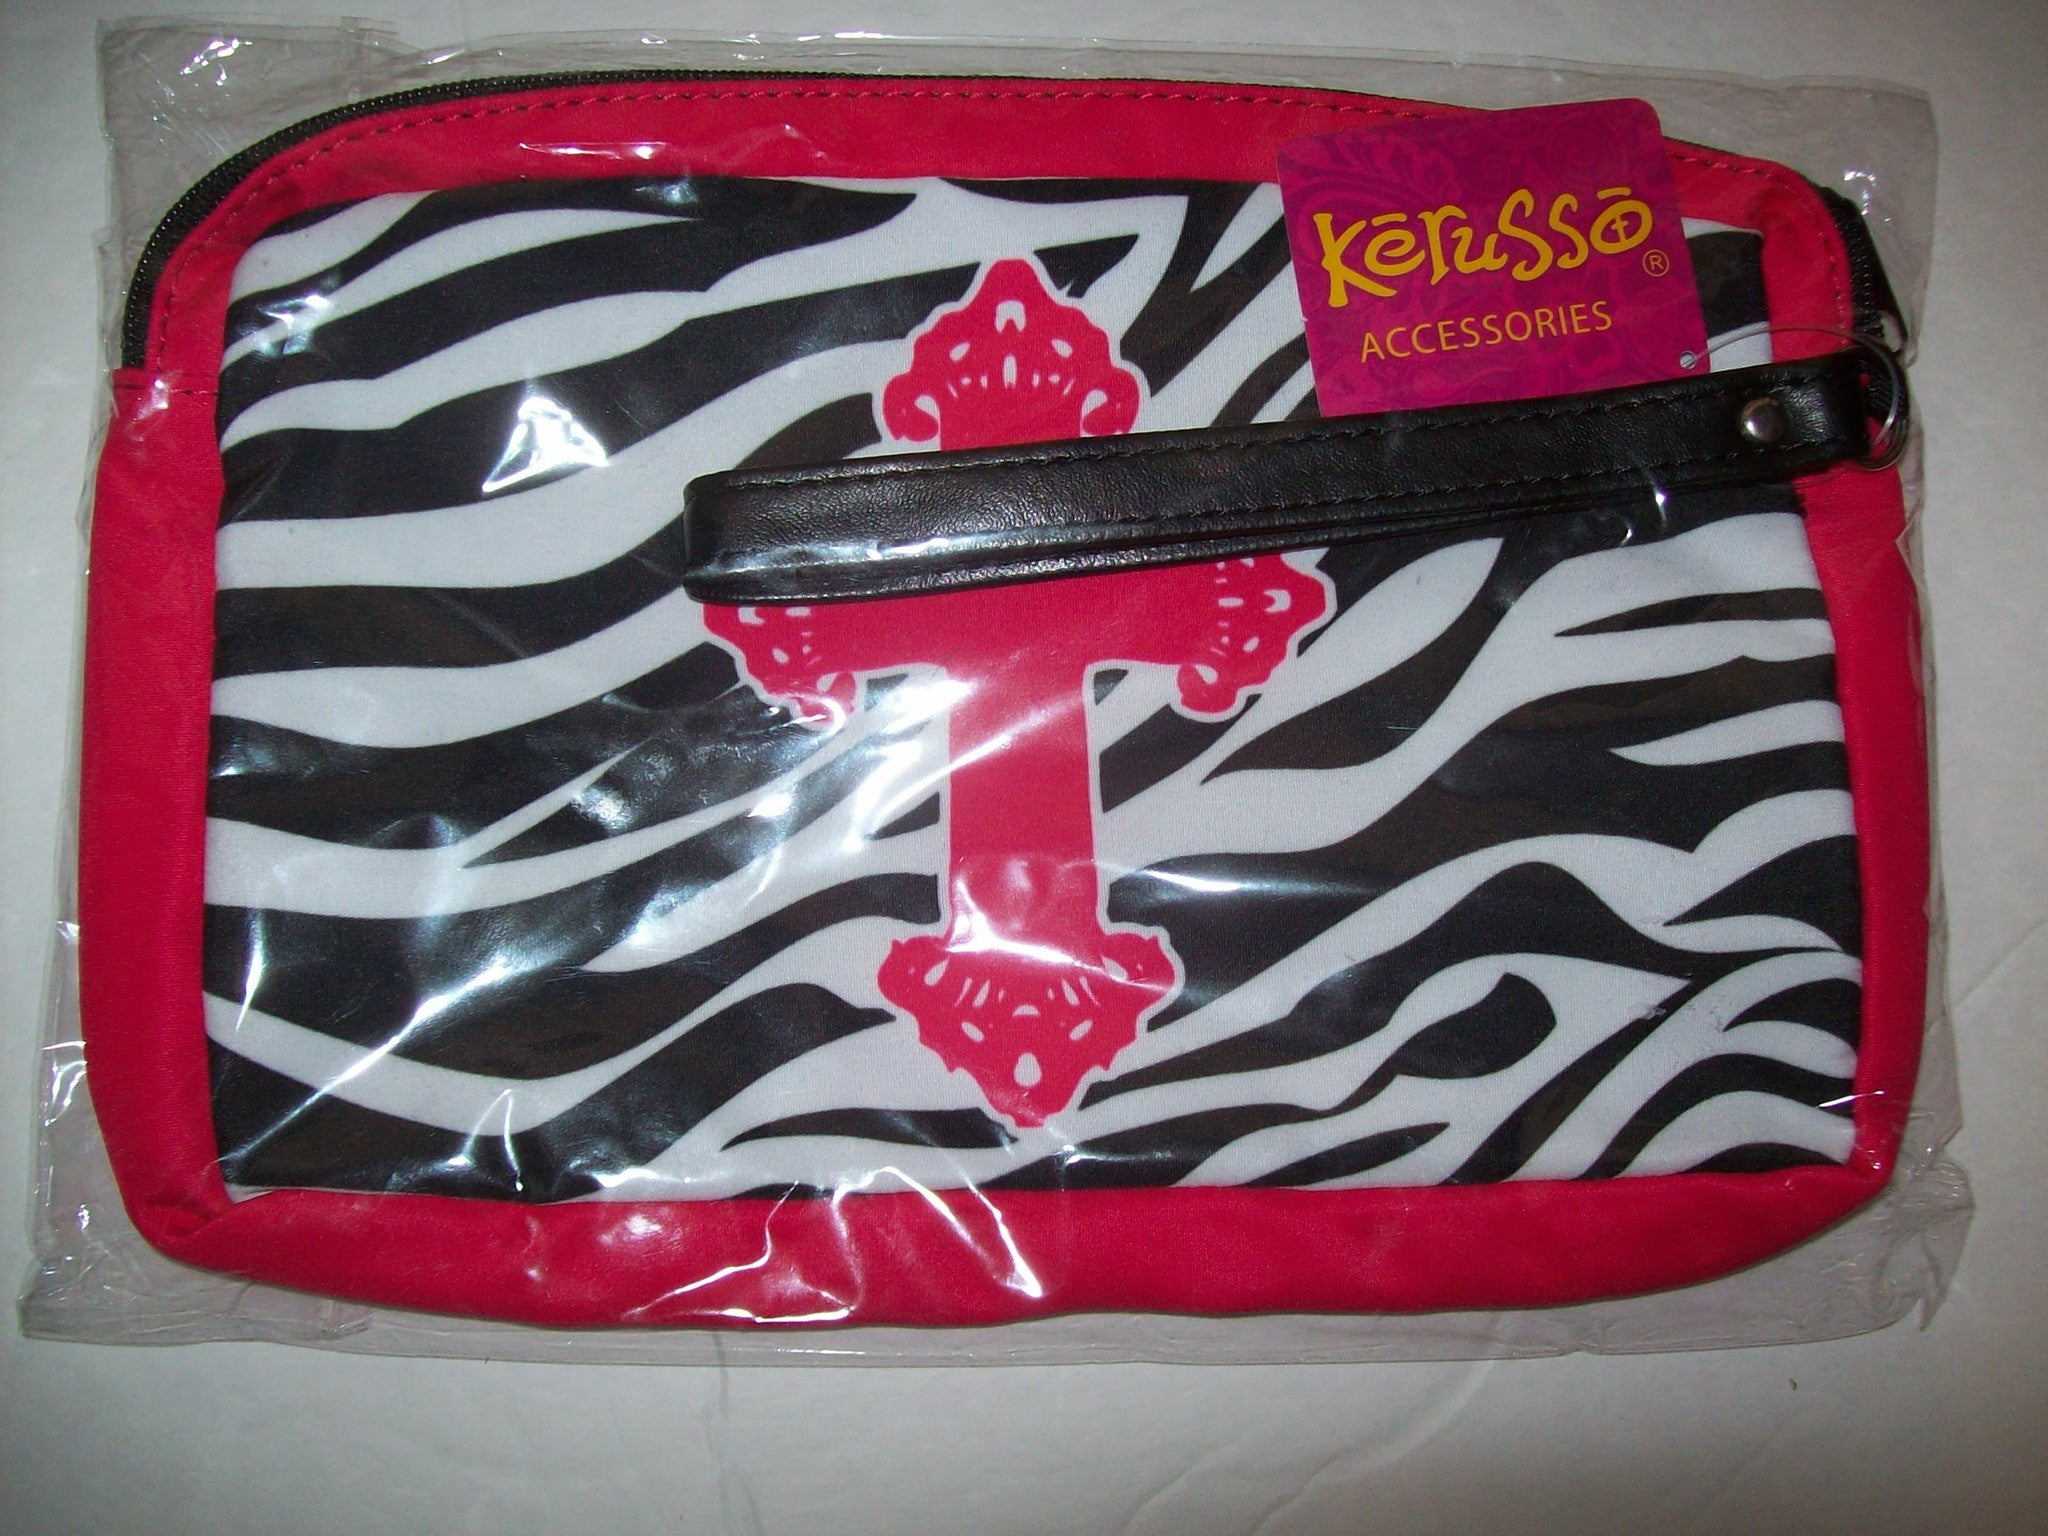 Zebra Cross Print Bag  Kerusso - We Got Character